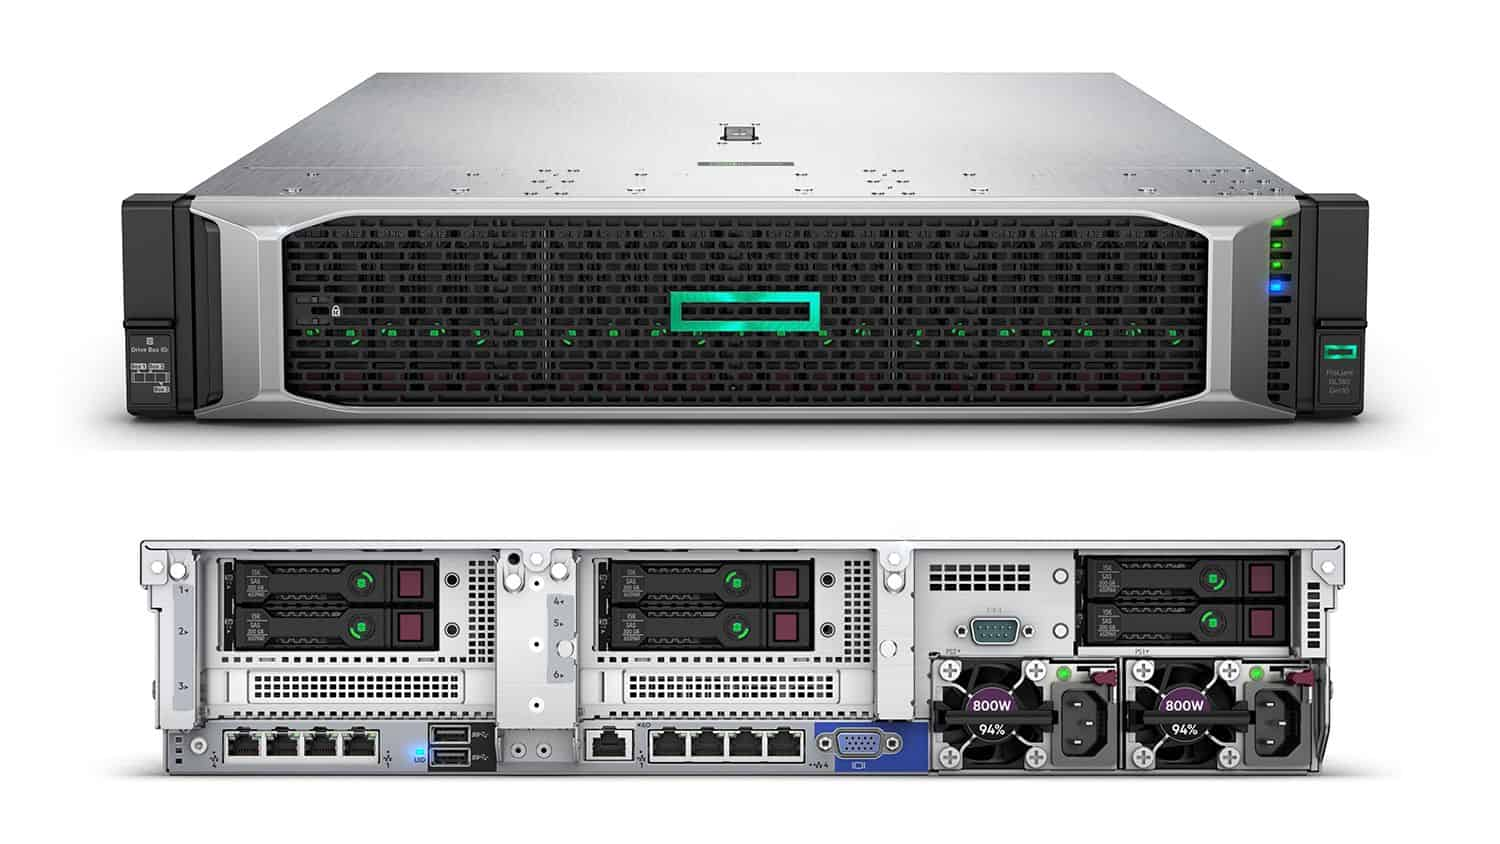 hp proliant dl380 g9 firmware download